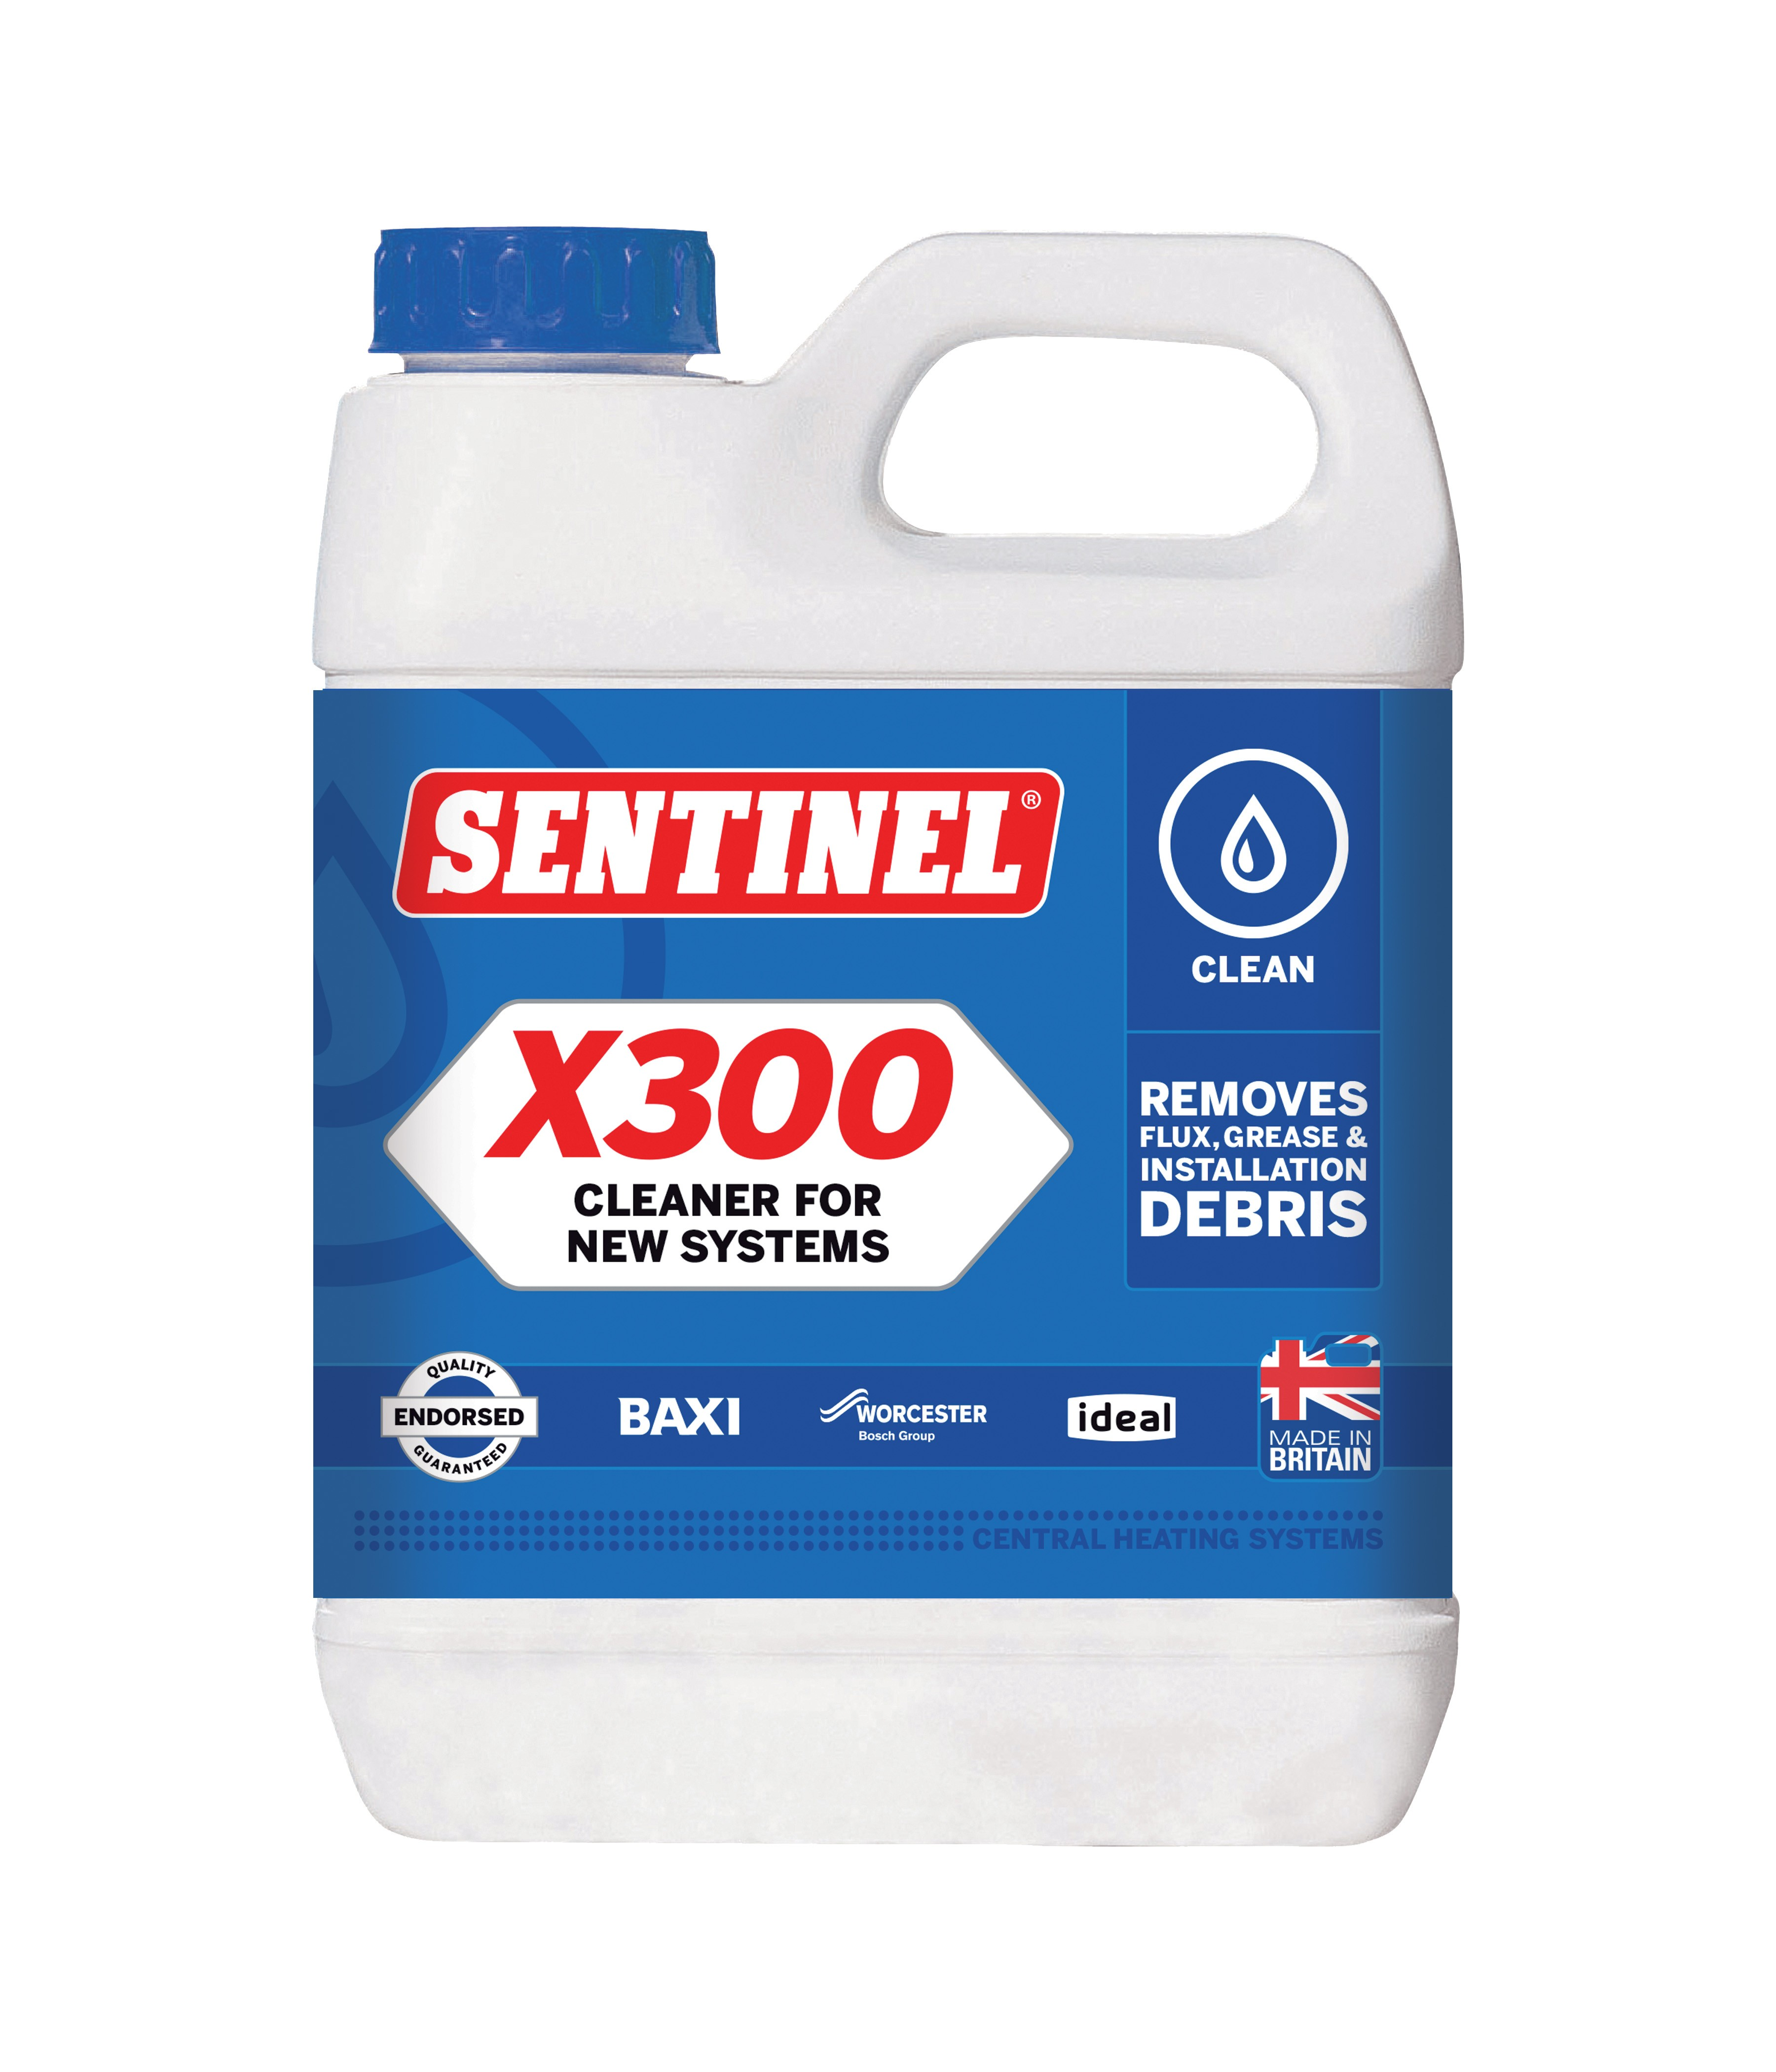 X300 Cleaner for New Systems | Sentinel